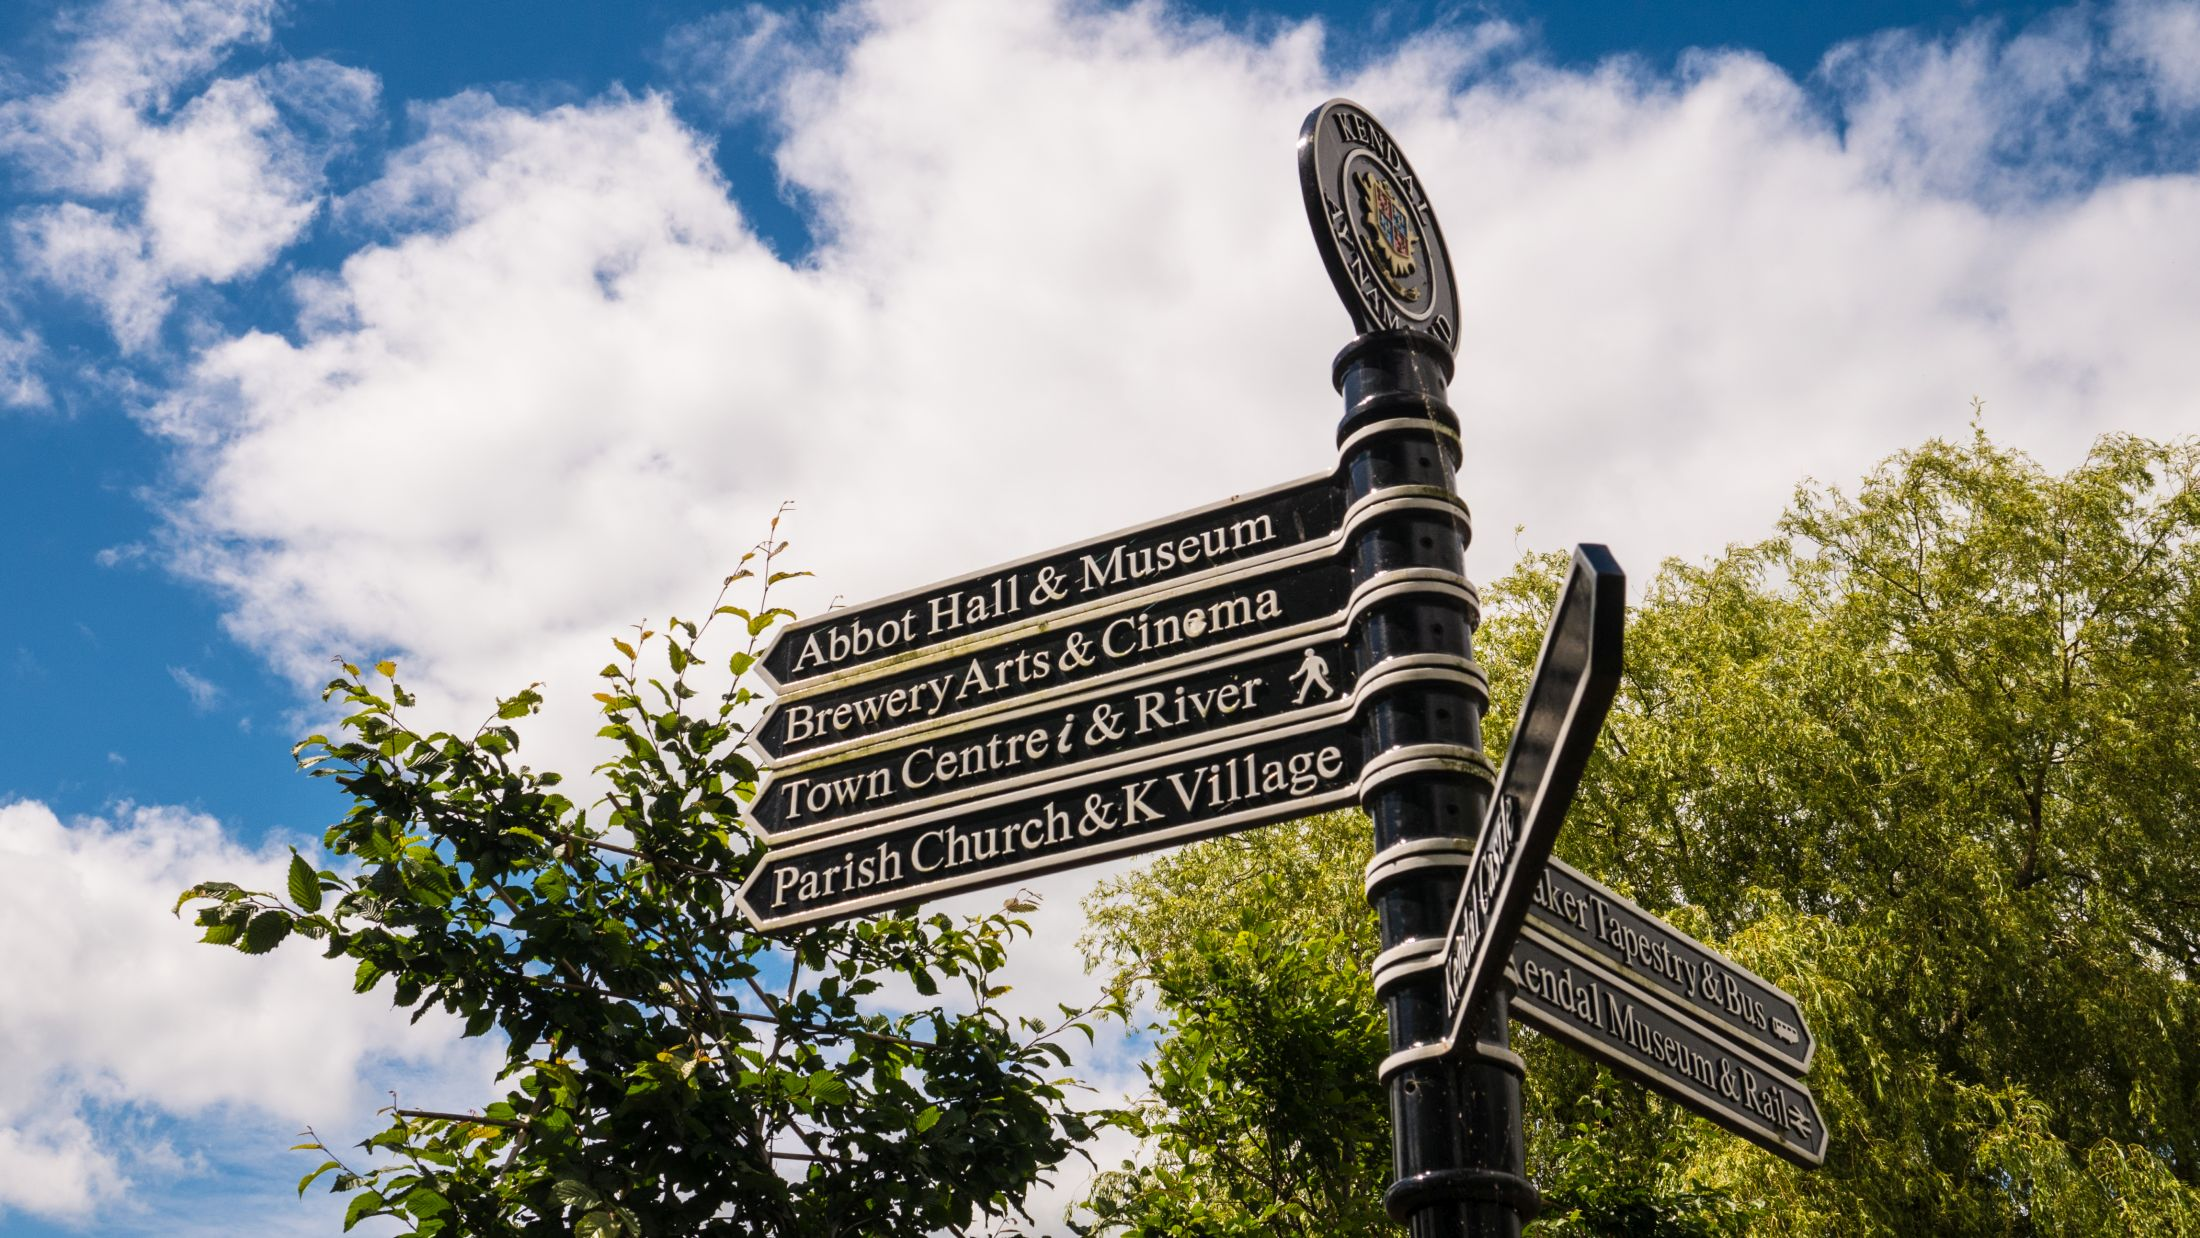 What to do in Kendal - list of activities